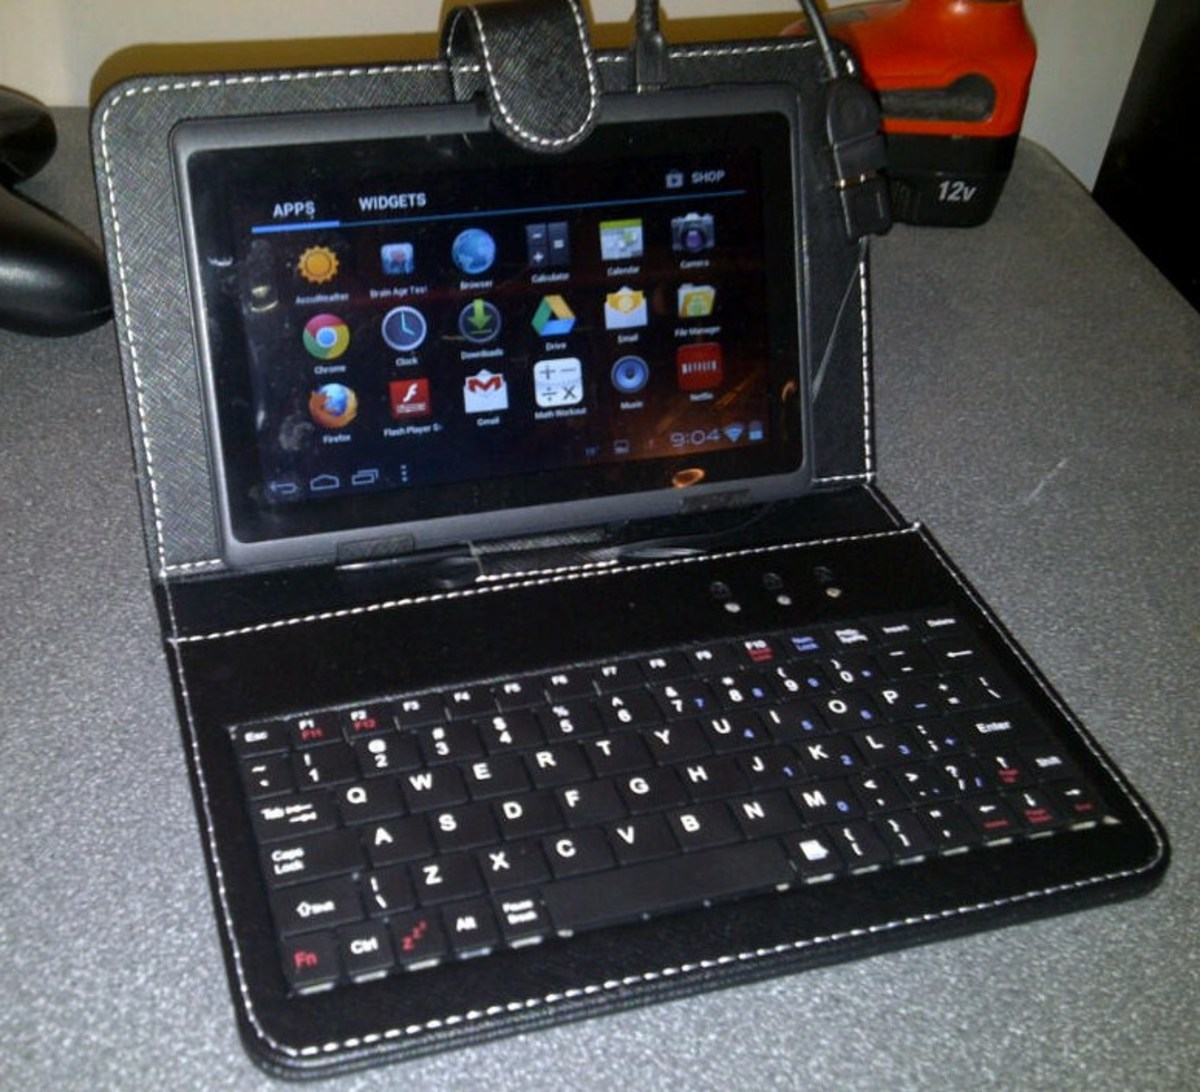 Best Cheap Android Tablets- Are Budget Tablets Under $100